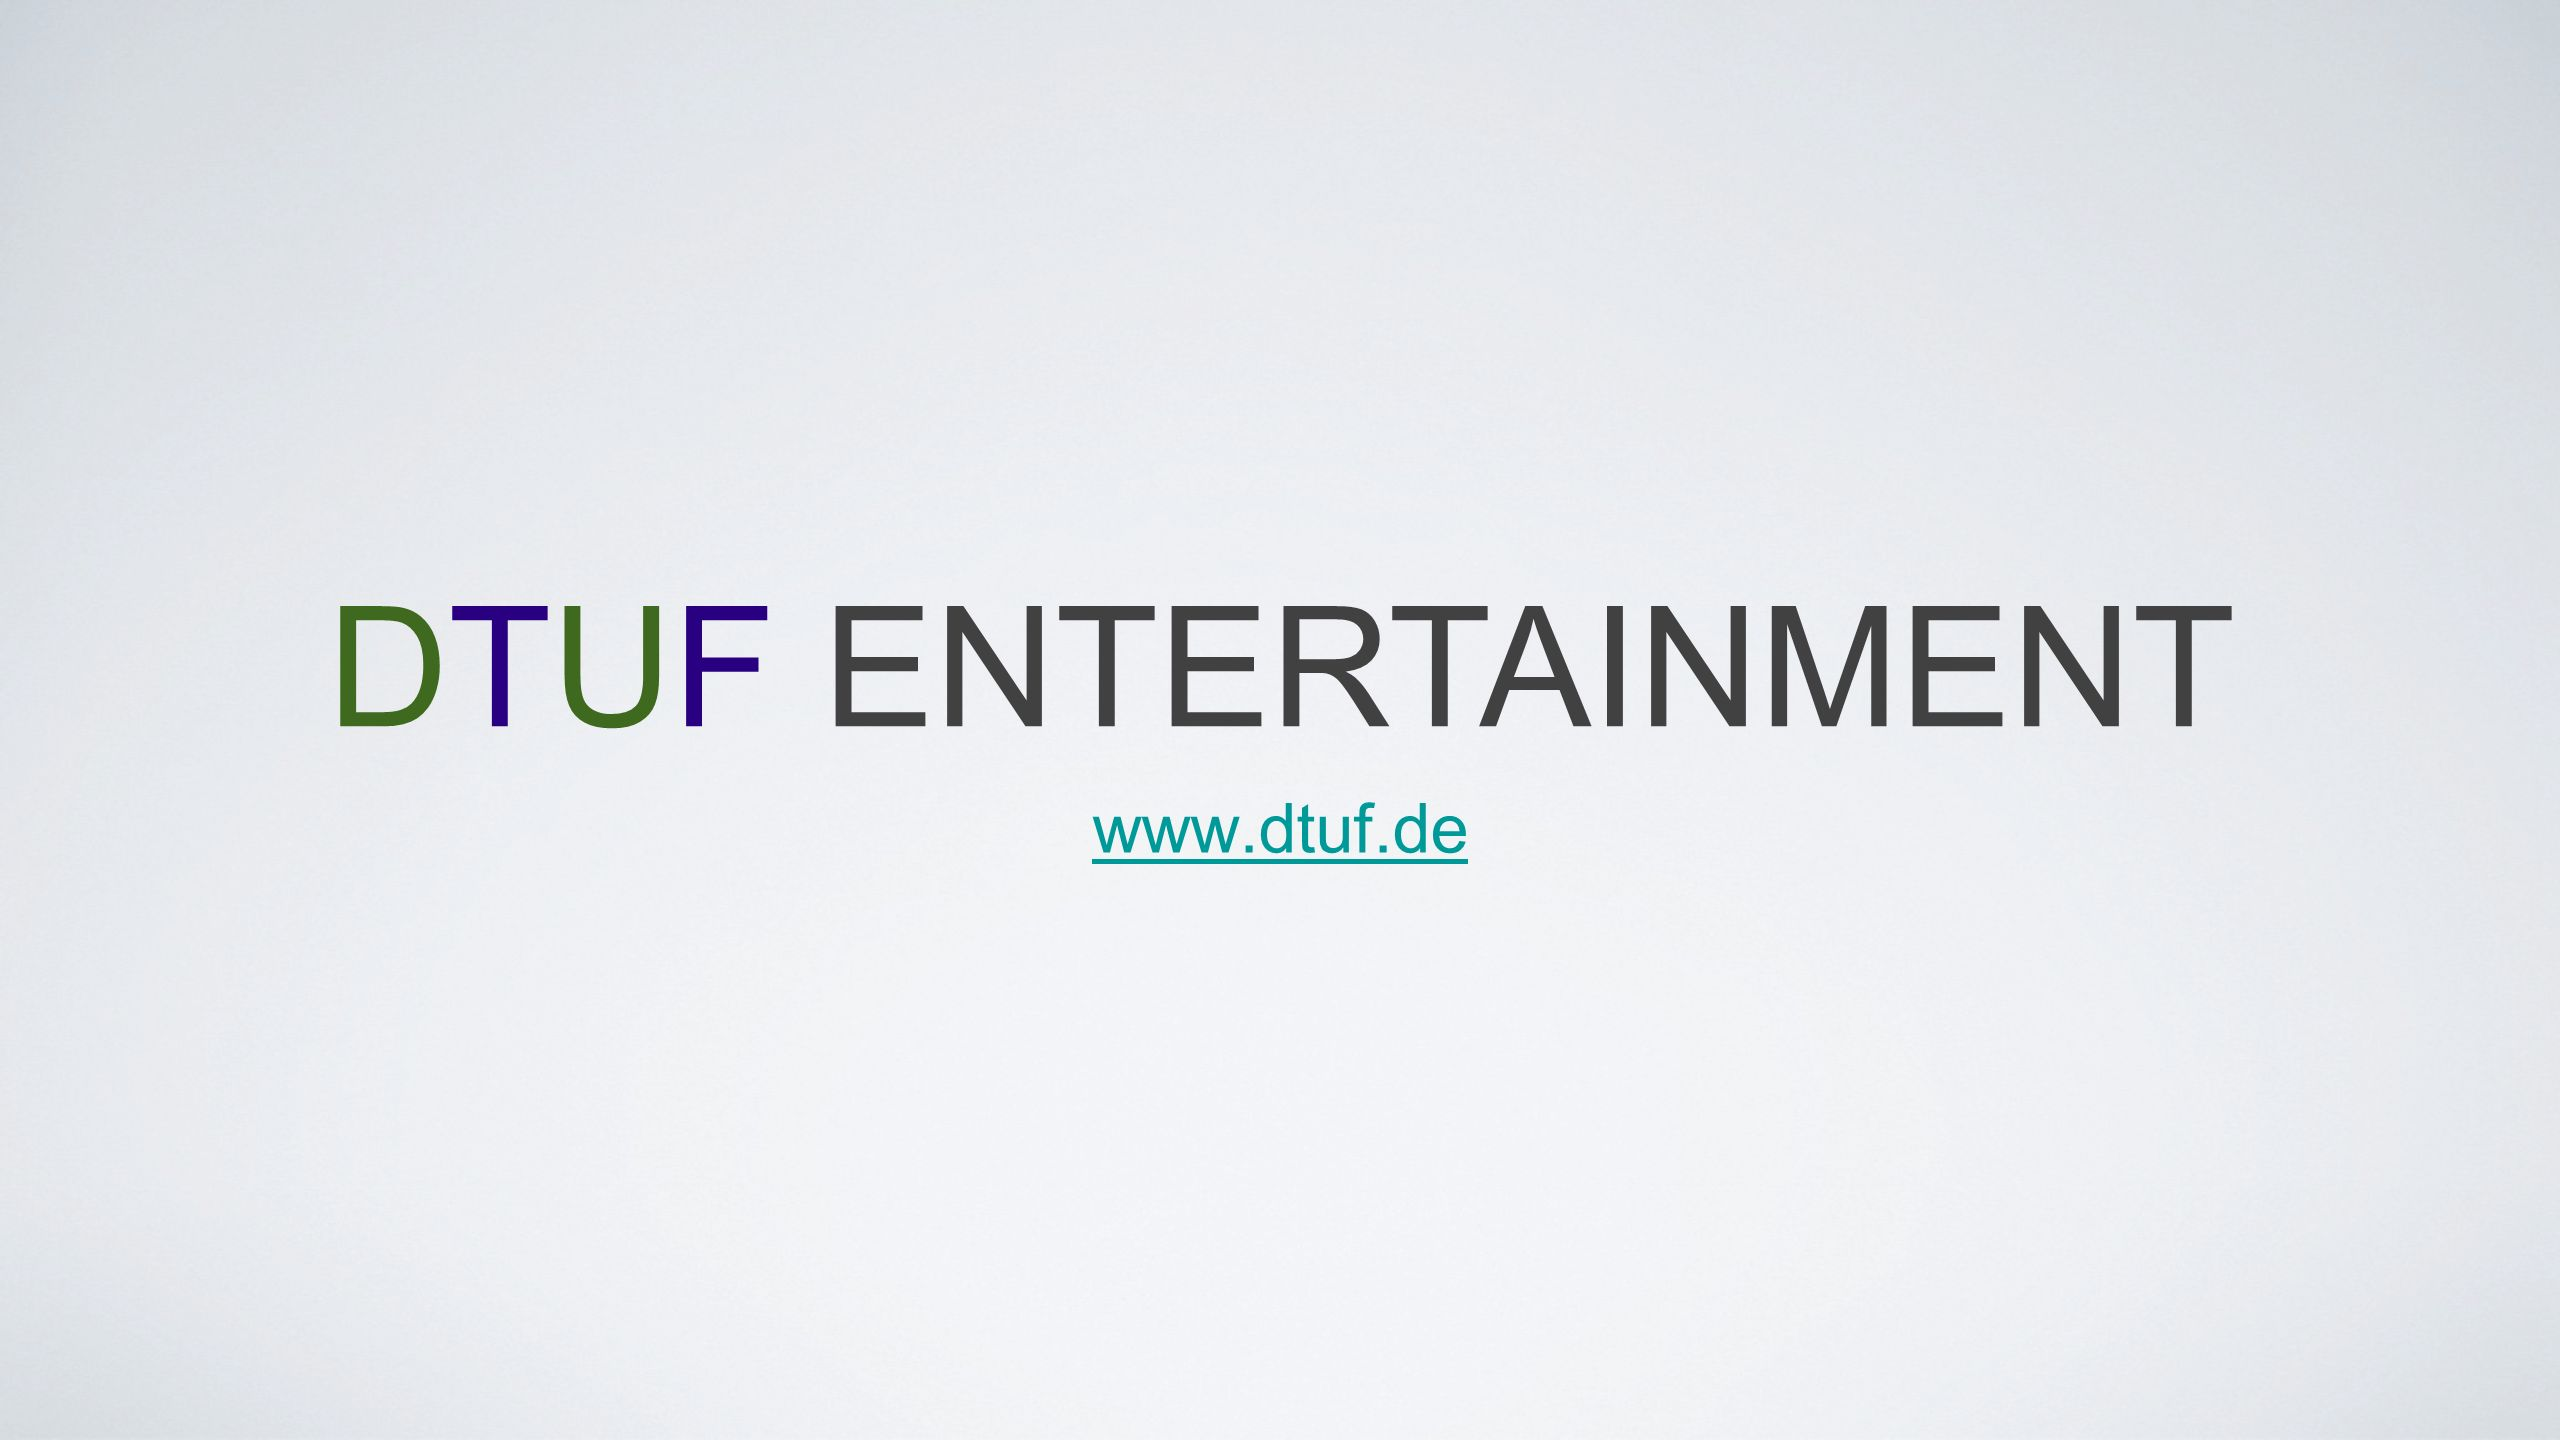 www.dtuf.de DTUF ENTERTAINMENT